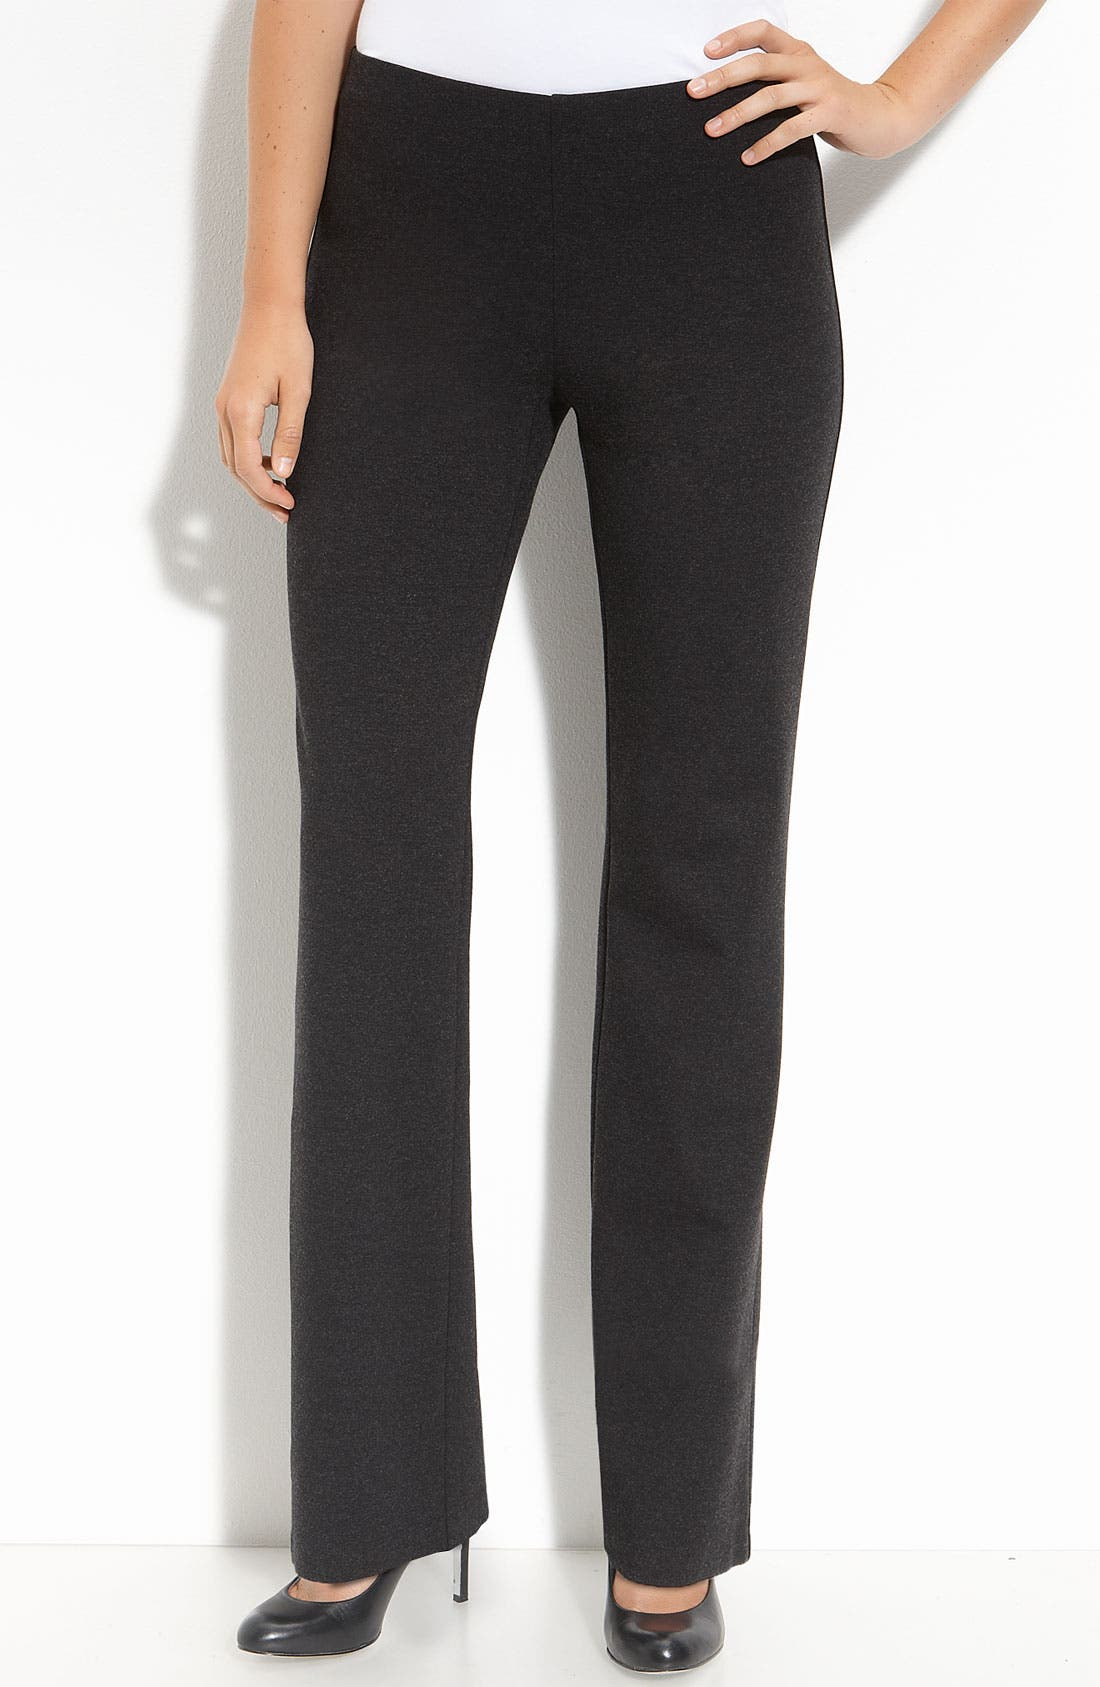 Main Image - Eileen Fisher Ponte Knit Pants (Online Exclusive)